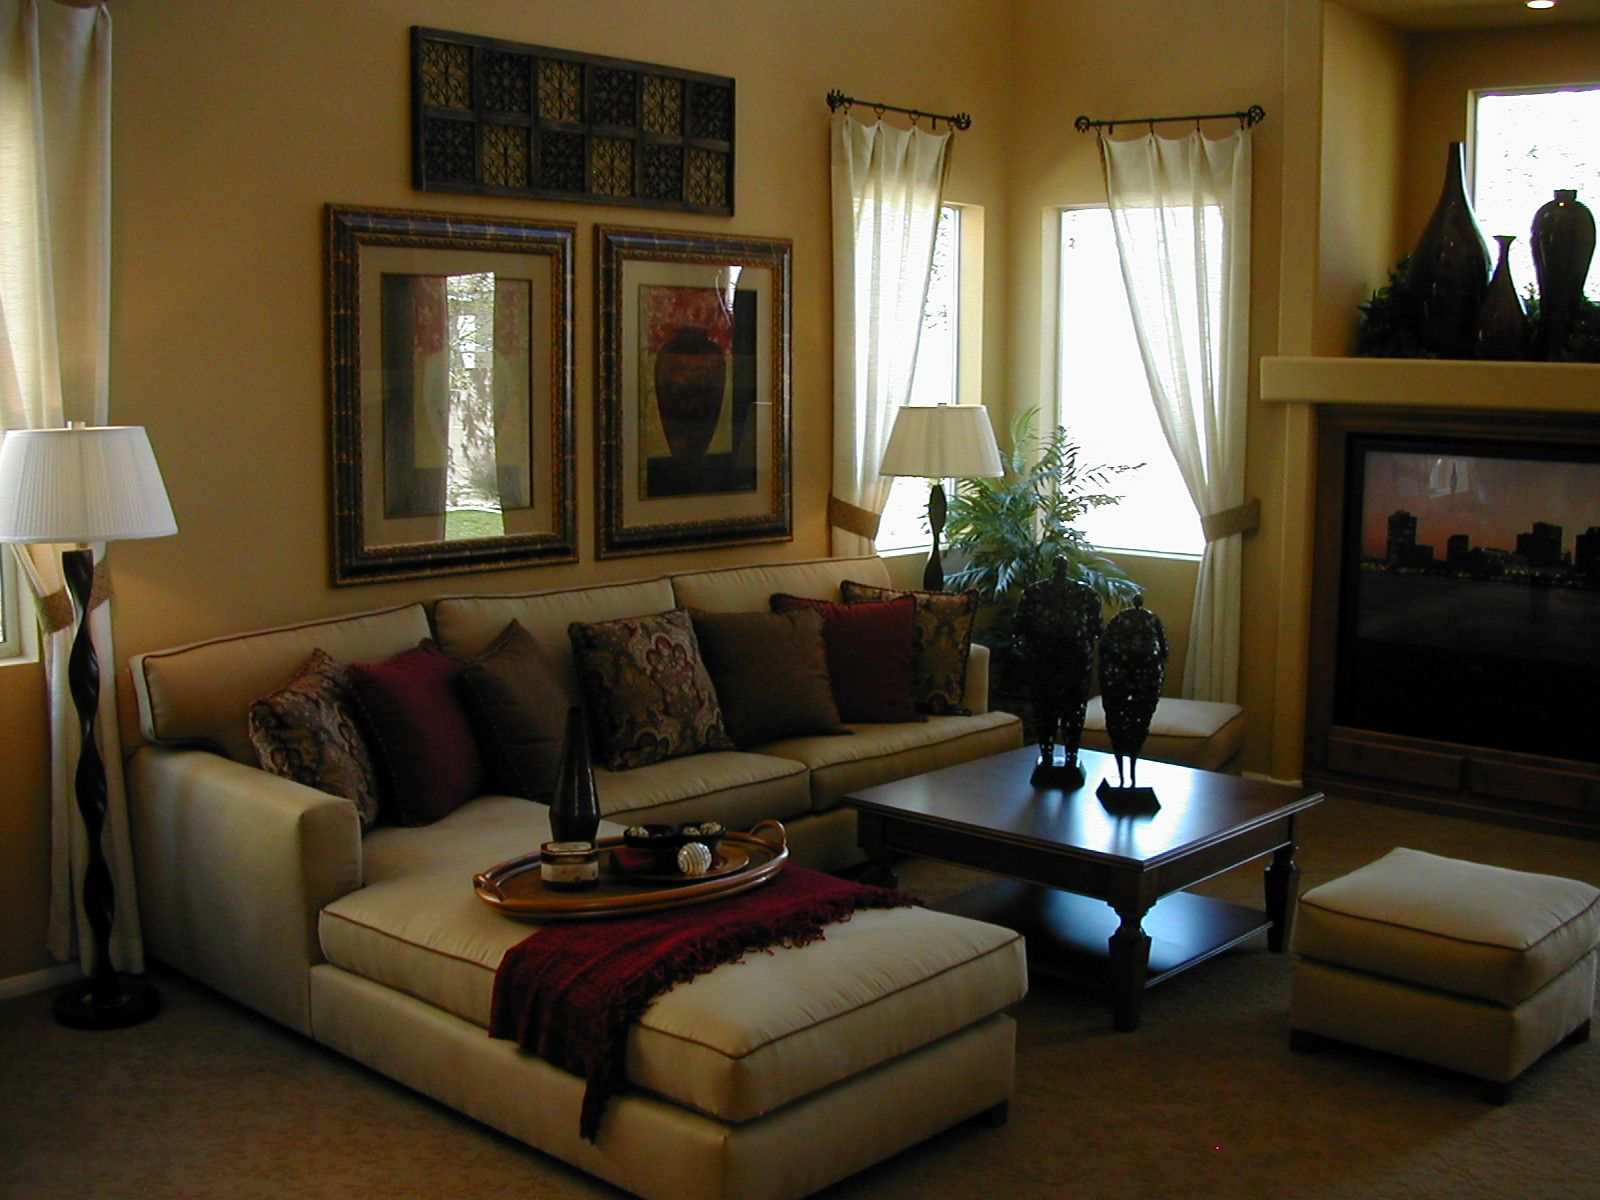 Family Room Furniture Ideas Family Room Furniture Ideas  Google Search  Family Room